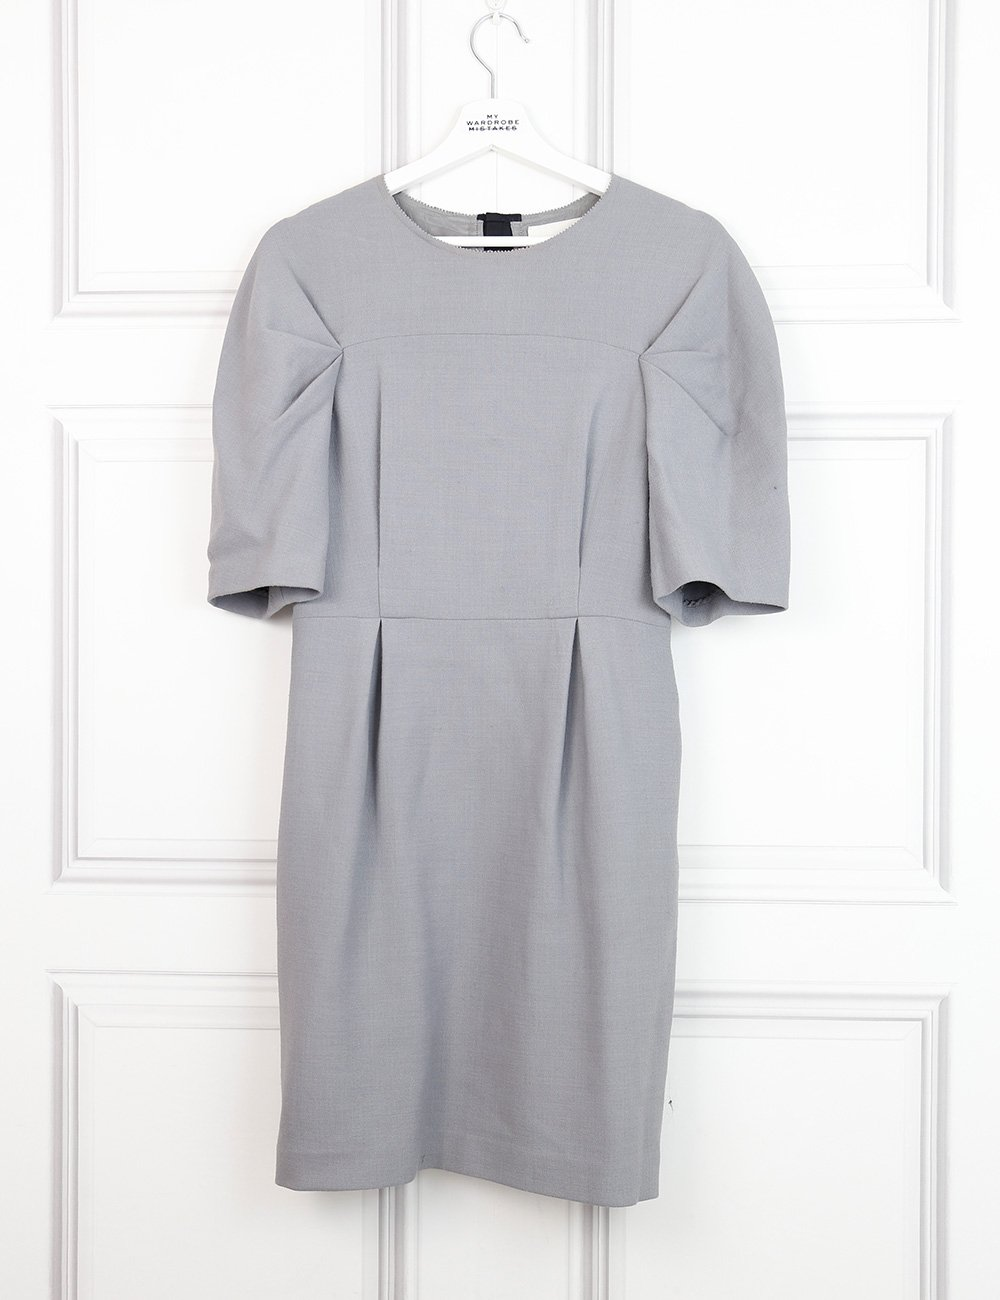 Phillip Lim grey mid-length classic dress with beautiful details at the back 10UK- My Wardrobe Mistakes